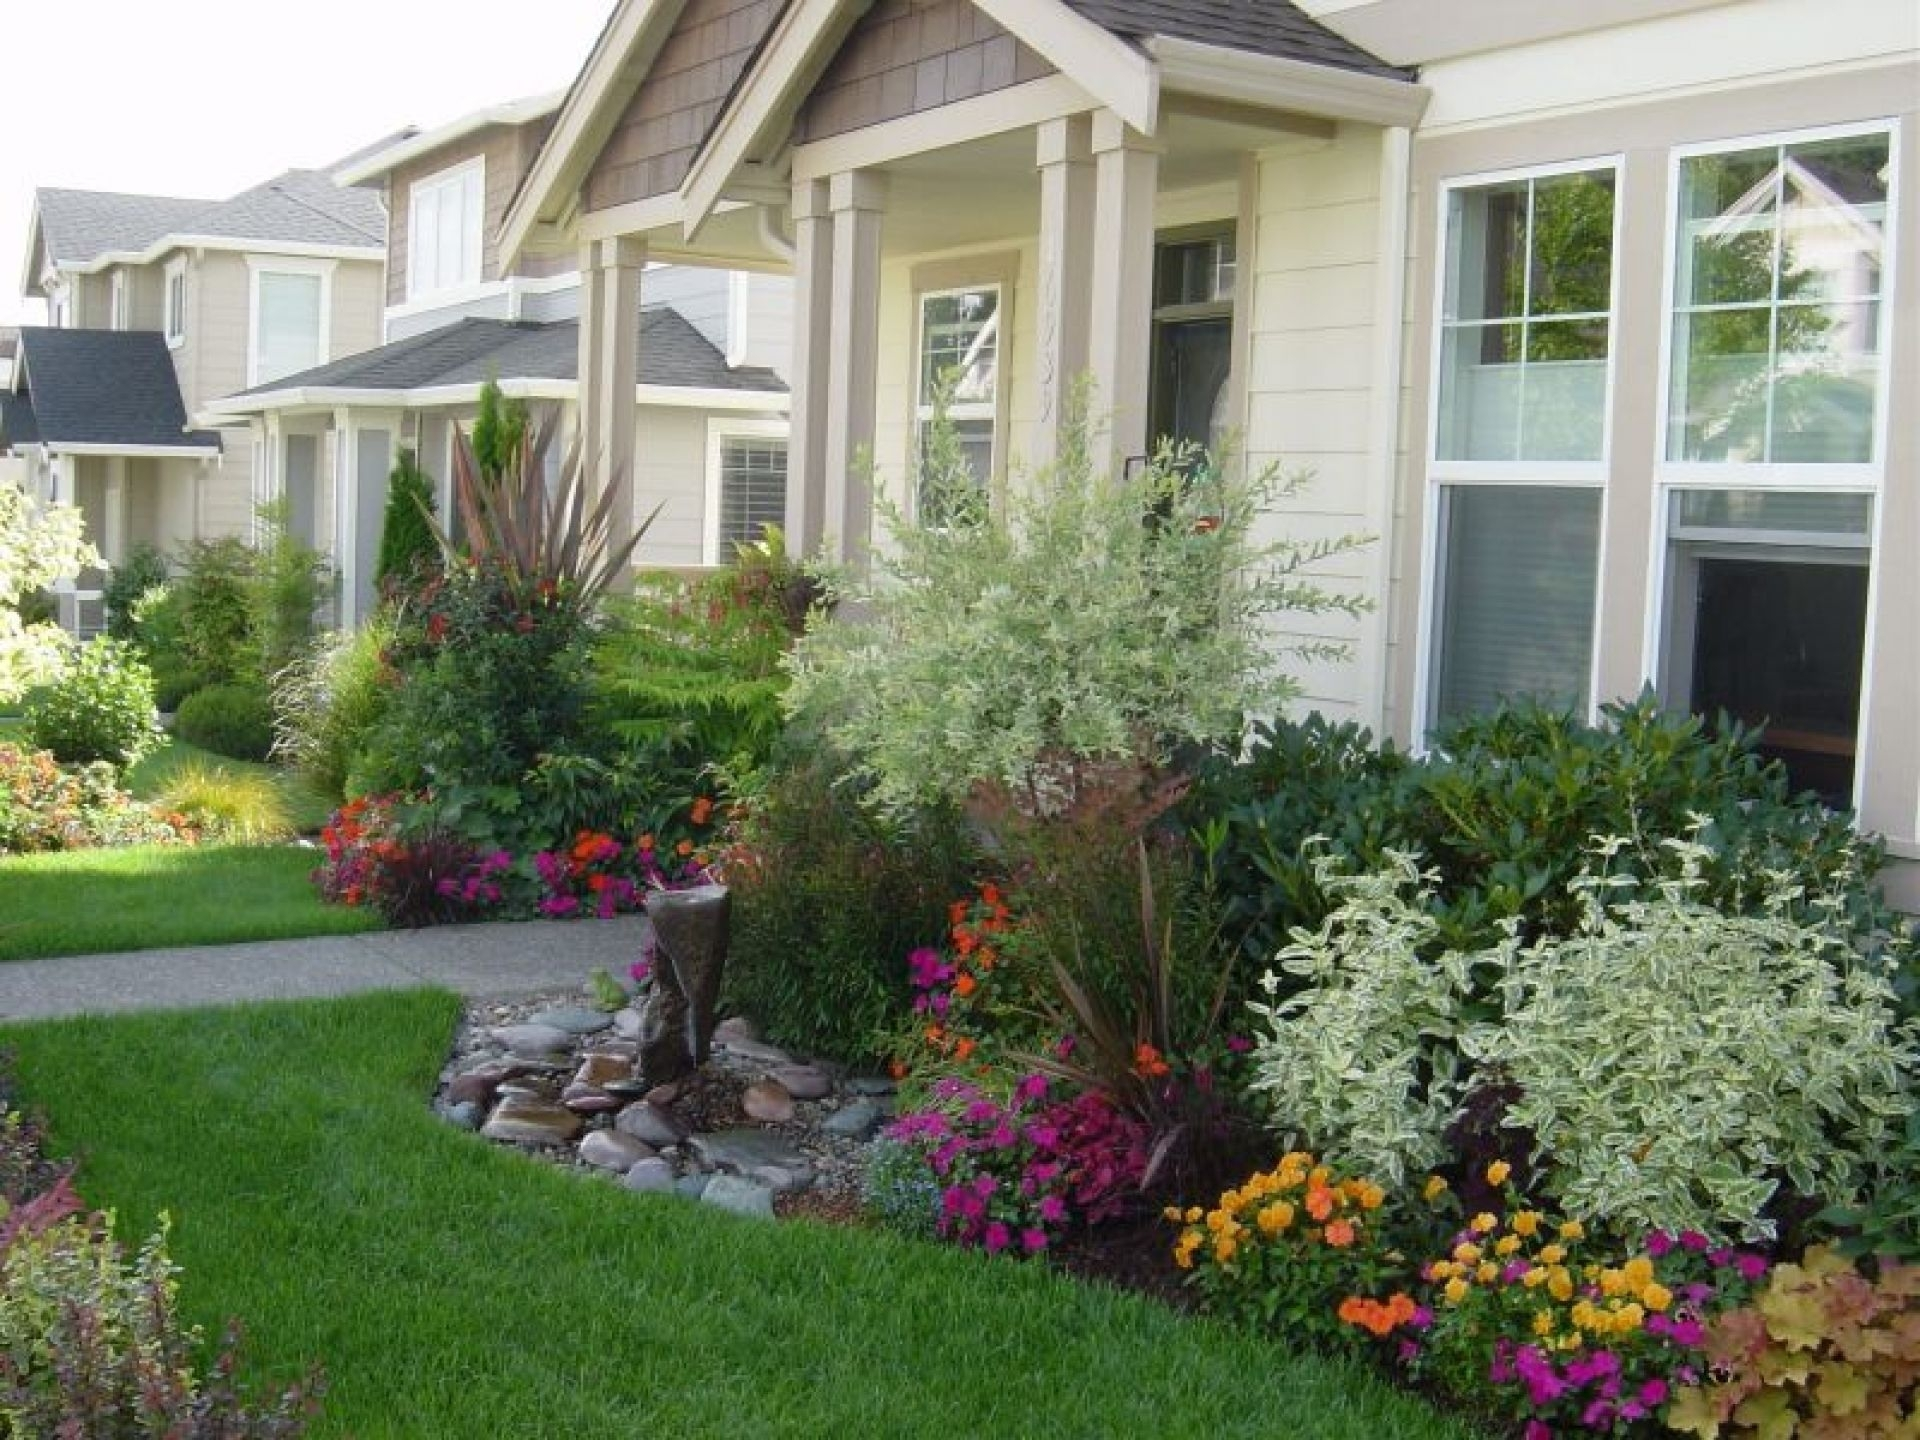 Landscaping Ideas For Rural Homes Ranch Style — Randolph ... on raised ranch entry designs, 2 family house designs, 2 story house designs, raised ranch front step designs, 3 family house designs, fourplex house designs, flat house designs, 2 level house designs, raised ranch additions designs, residential house designs, 3 story house designs, 1 story house designs, ranch entryway designs, raised ranch style home designs, 1 storey house designs, traditional house designs, updated raised ranch home designs, contemporary colonial house designs, house dormer designs, log house designs,